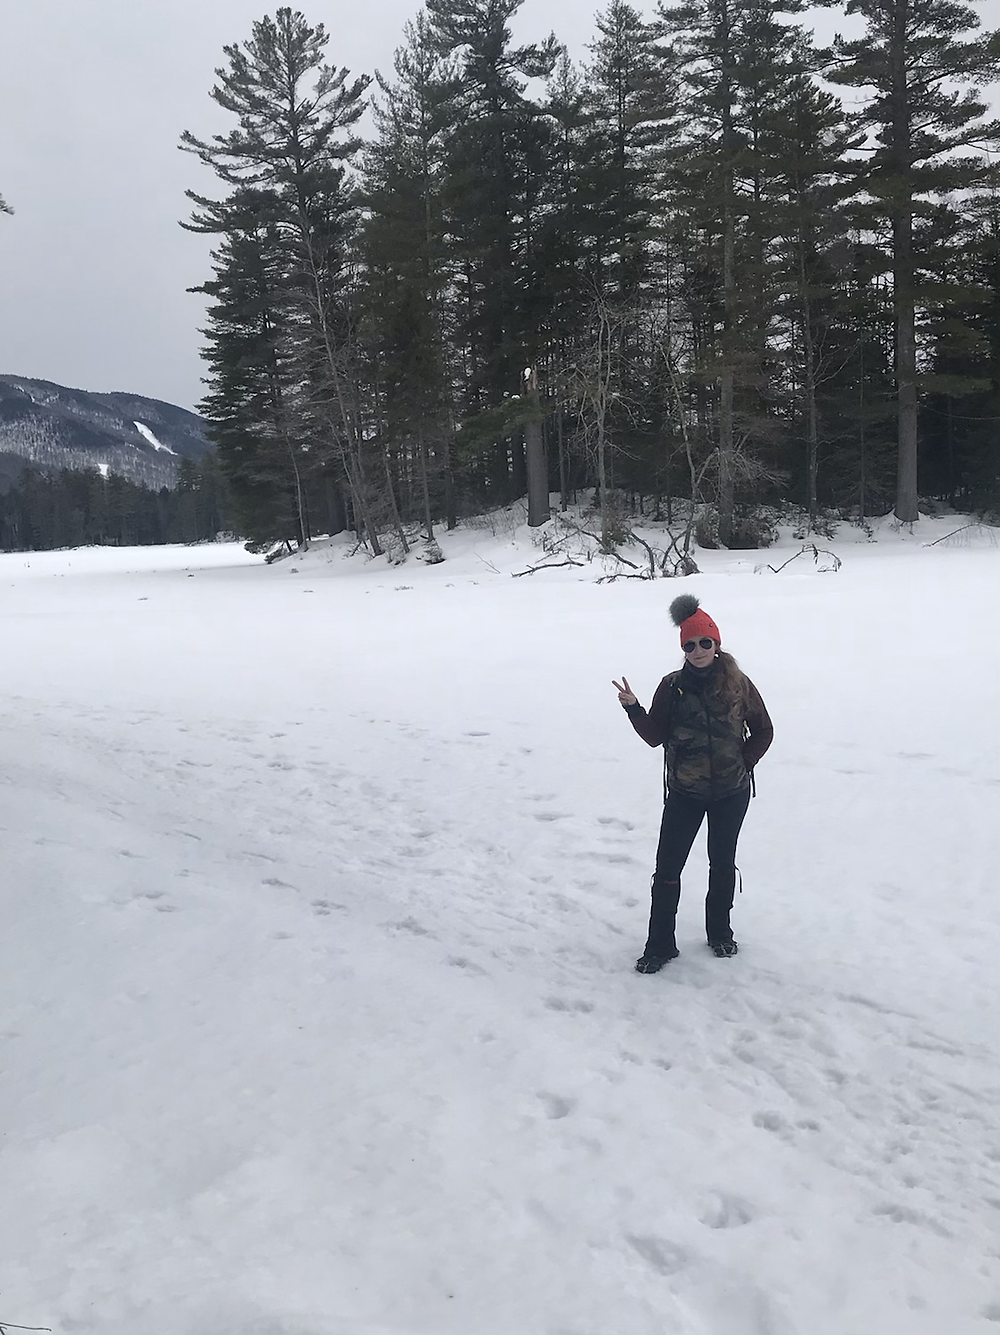 Me standing on the frozen lake